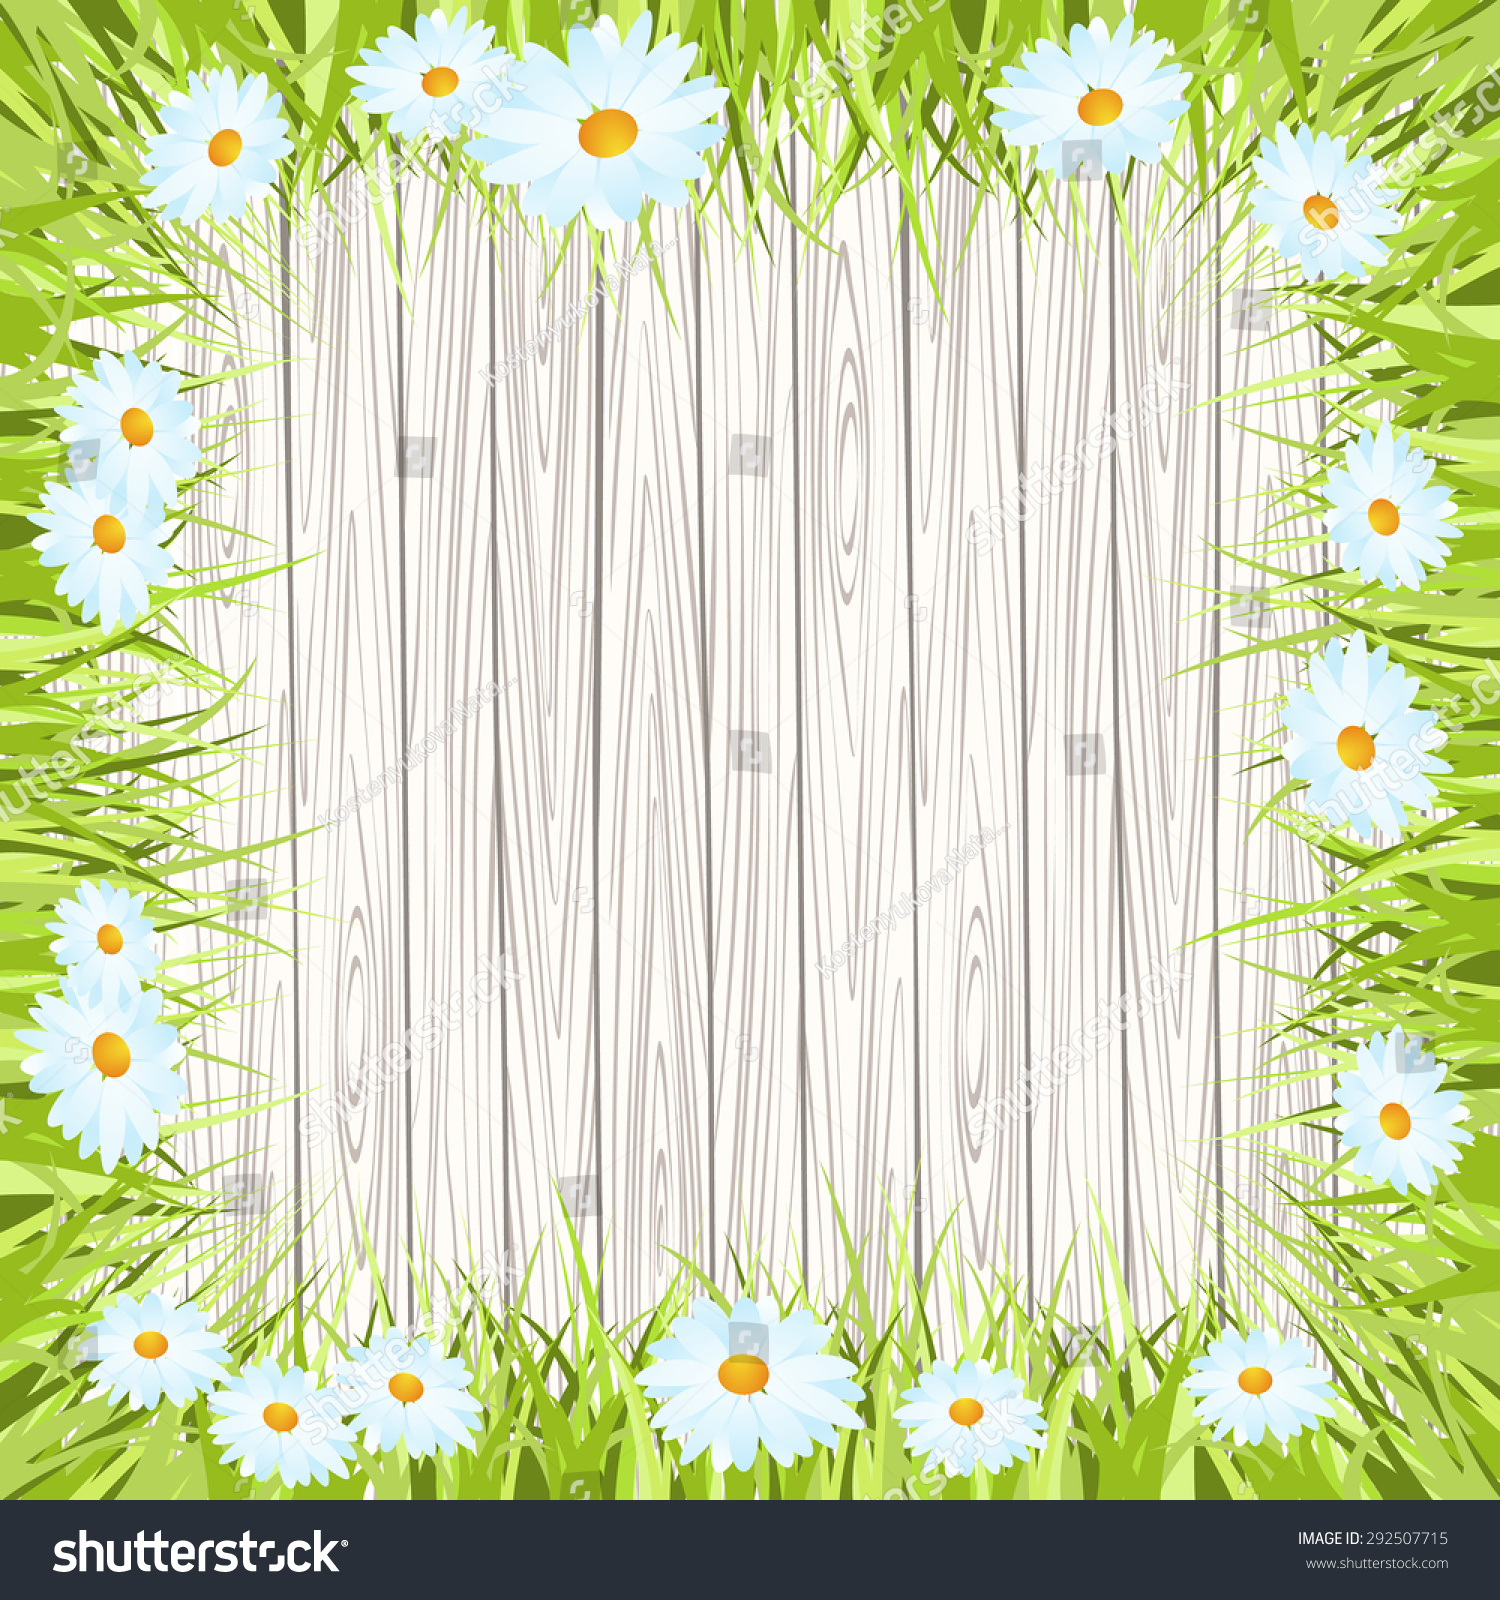 Spring Green Leaves And Flowers Background With Plants: Fresh Spring Green Grass Leaf Plant Stock Vector 292507715